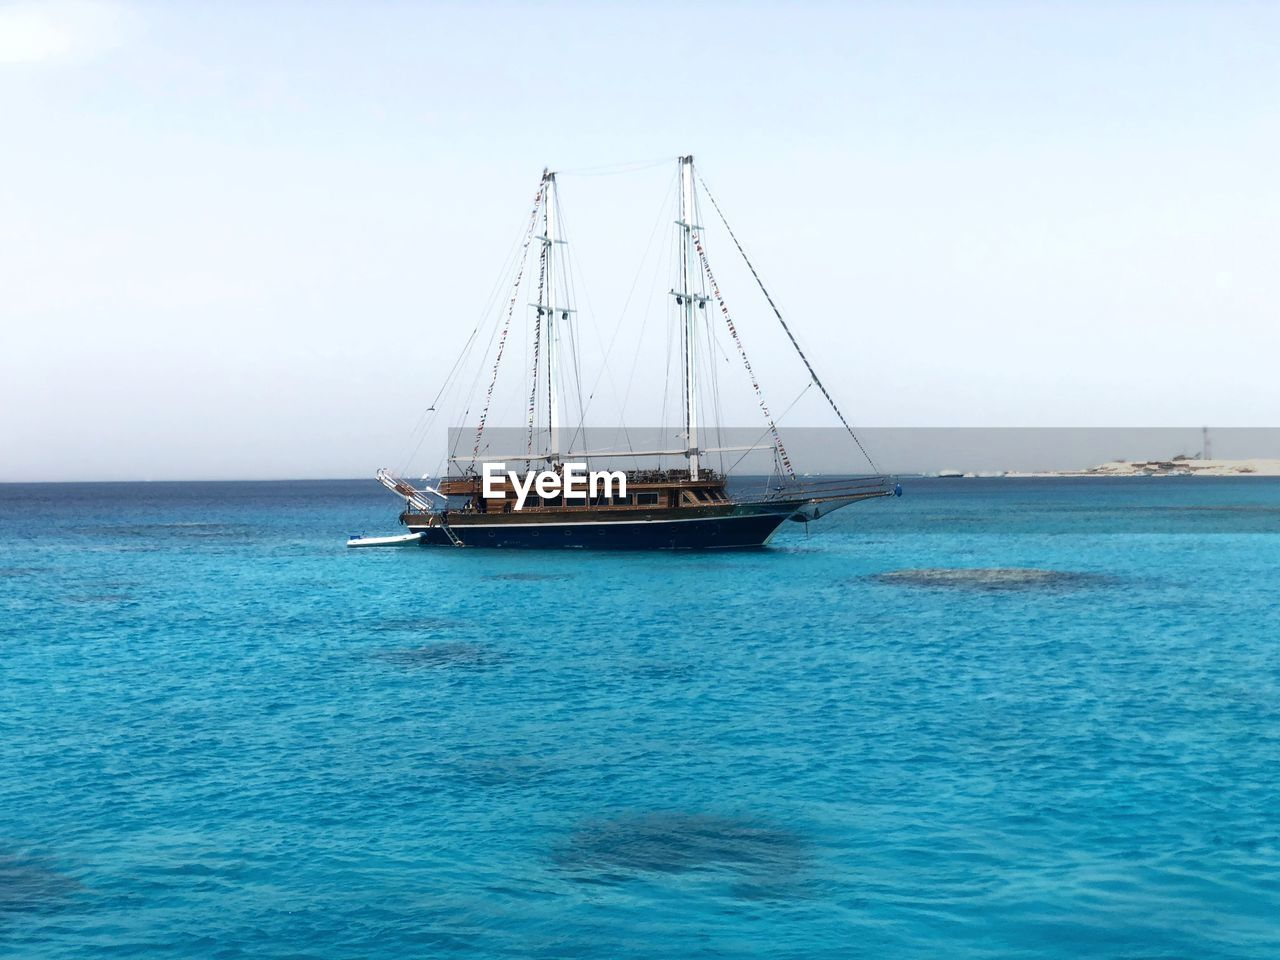 sea, transportation, nautical vessel, water, mode of transportation, sailboat, sky, sailing, pole, day, horizon over water, scenics - nature, waterfront, nature, beauty in nature, ship, horizon, mast, no people, outdoors, yacht, luxury, turquoise colored, yachting